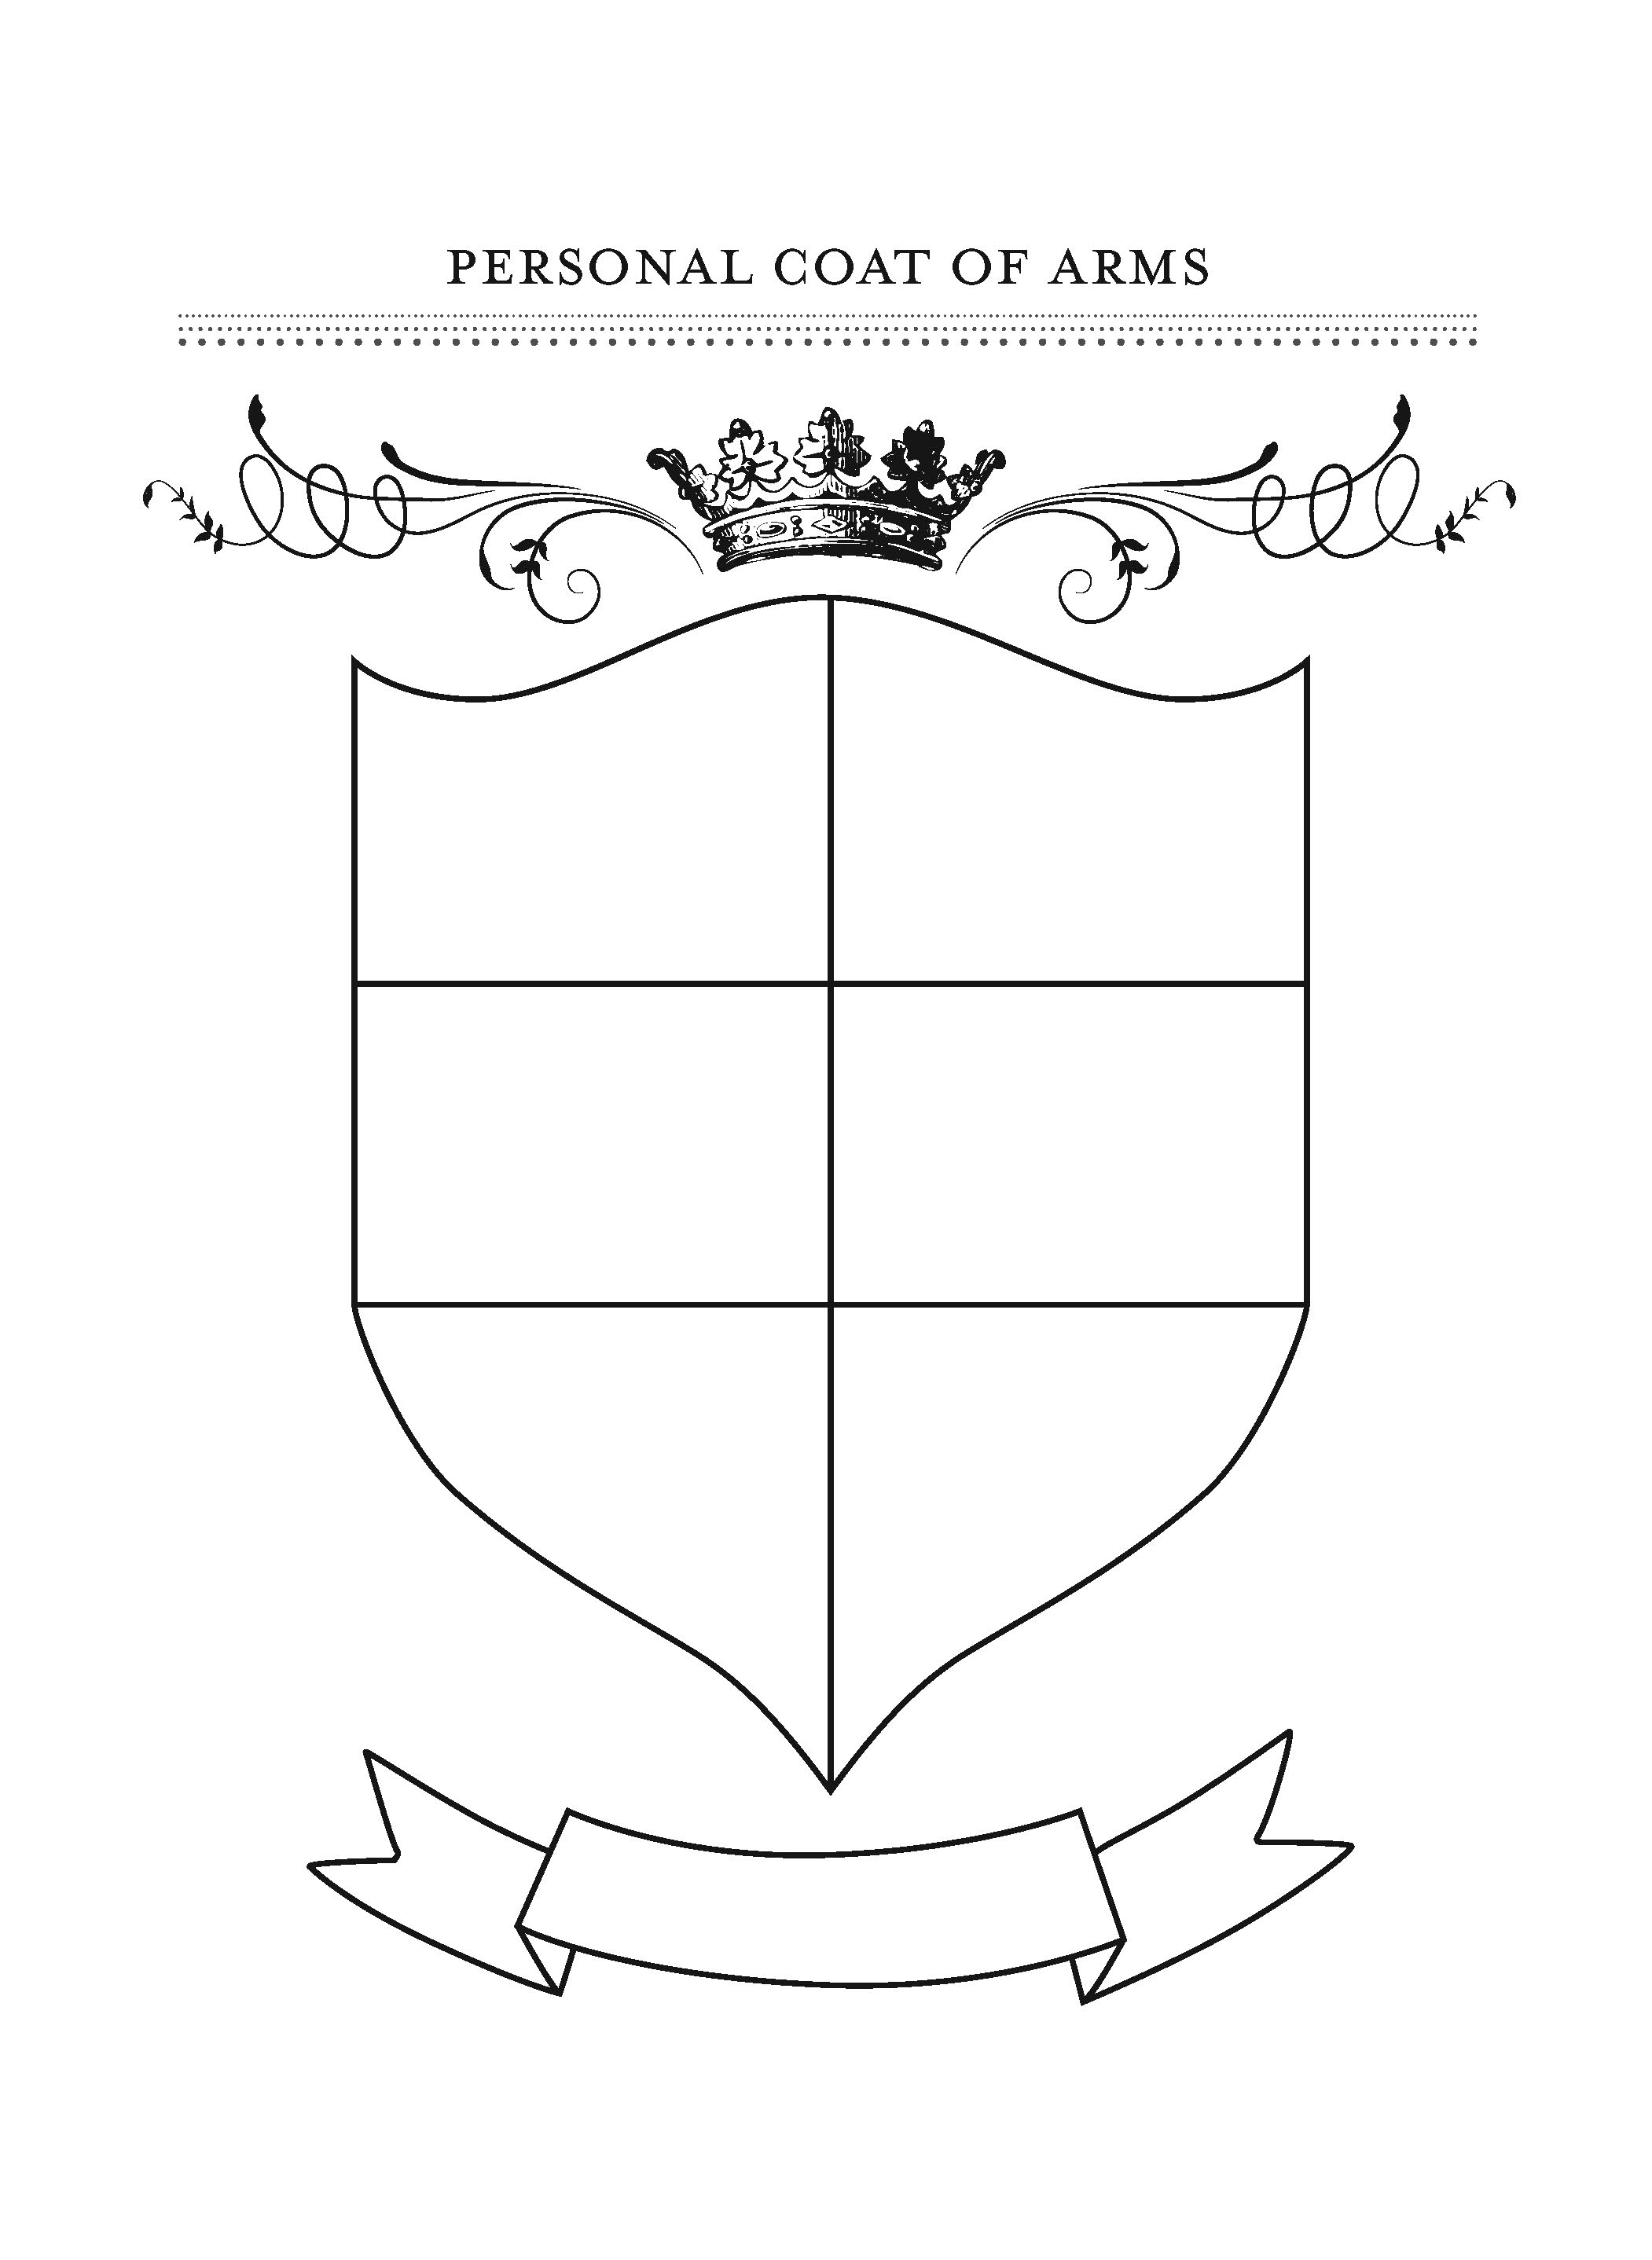 http://www.slowfamilyonline.com/wordpress/wp-content/uploads/2012/09/COAT_OF_ARMS_P.jpg